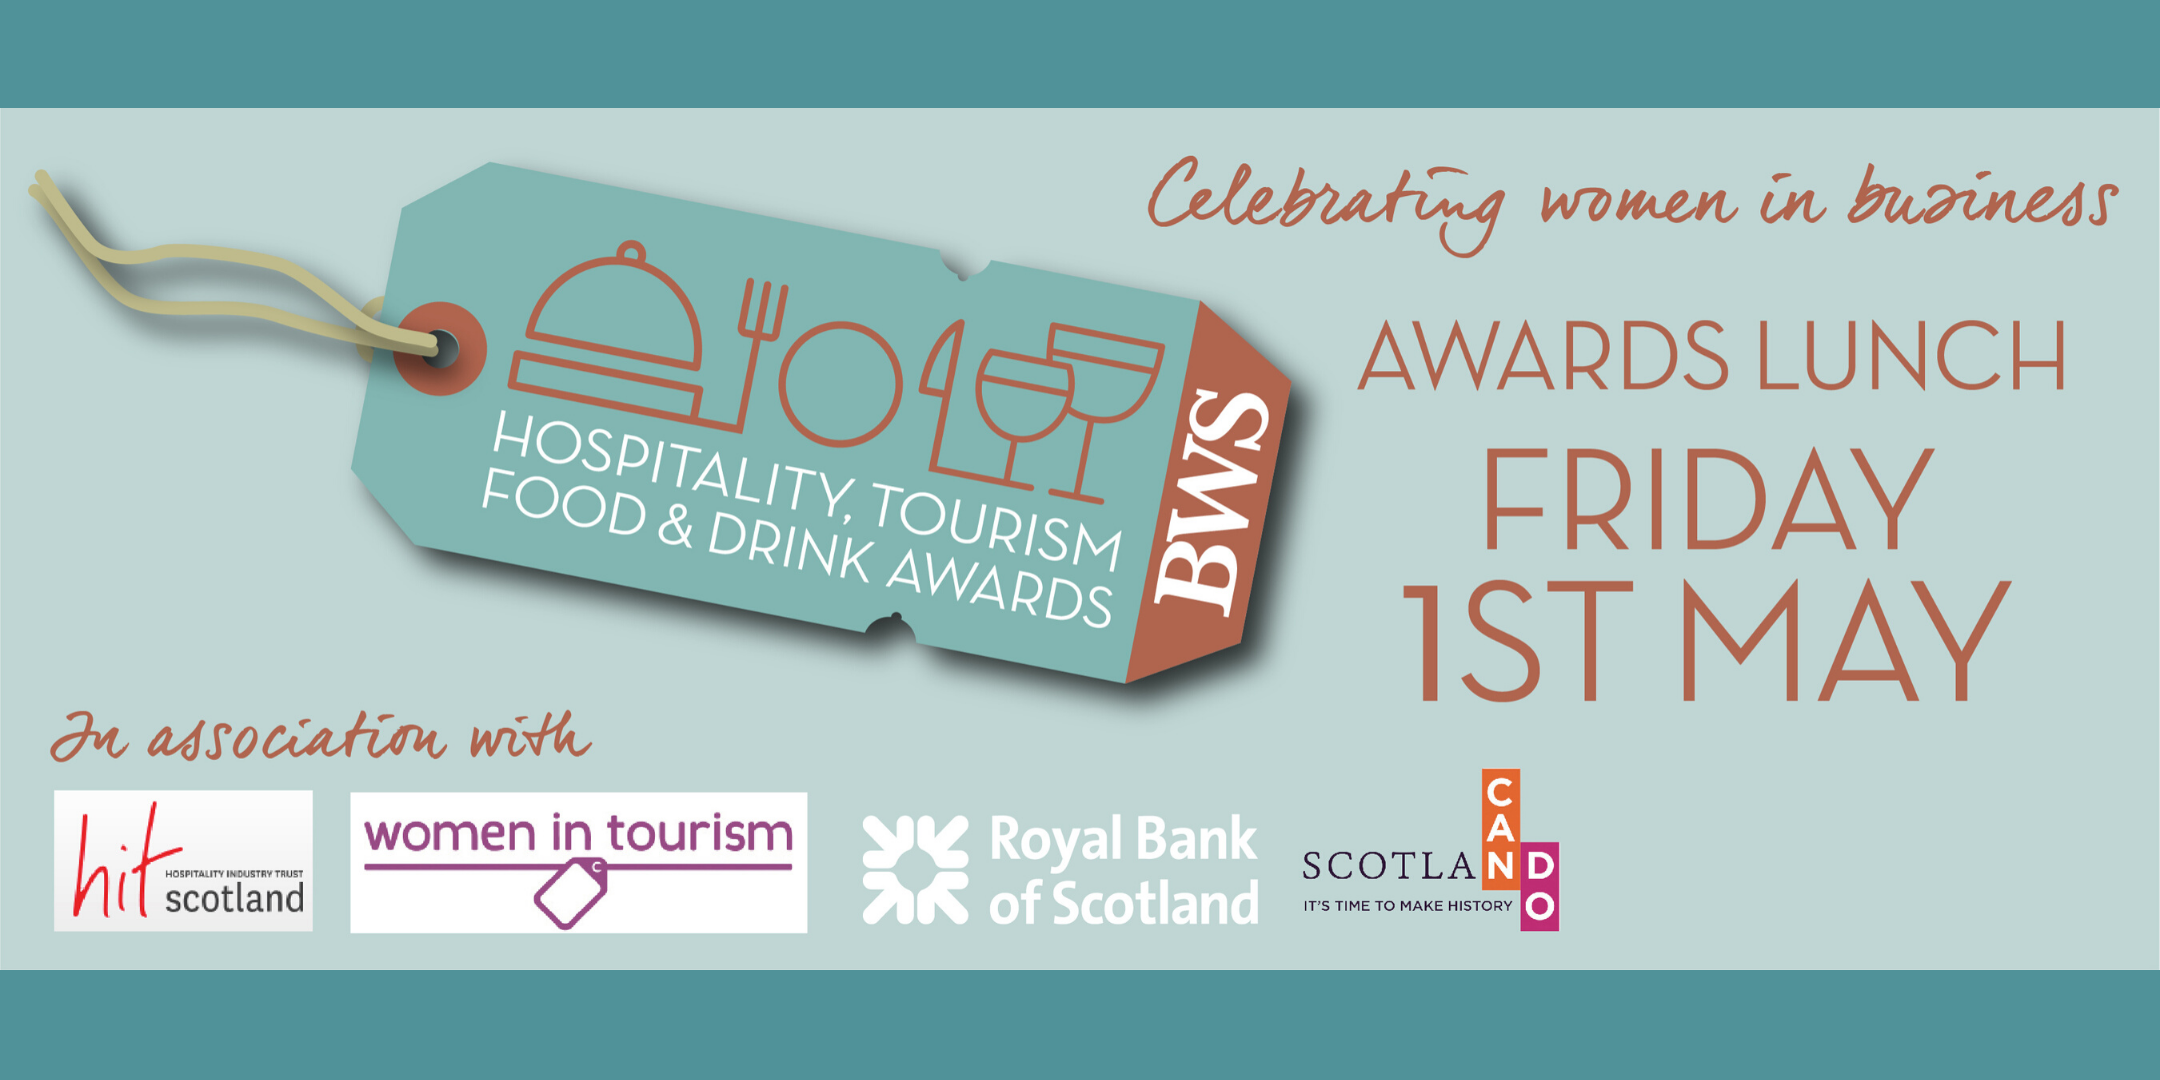 Hospitality, Tourism and Food & Drink Awards